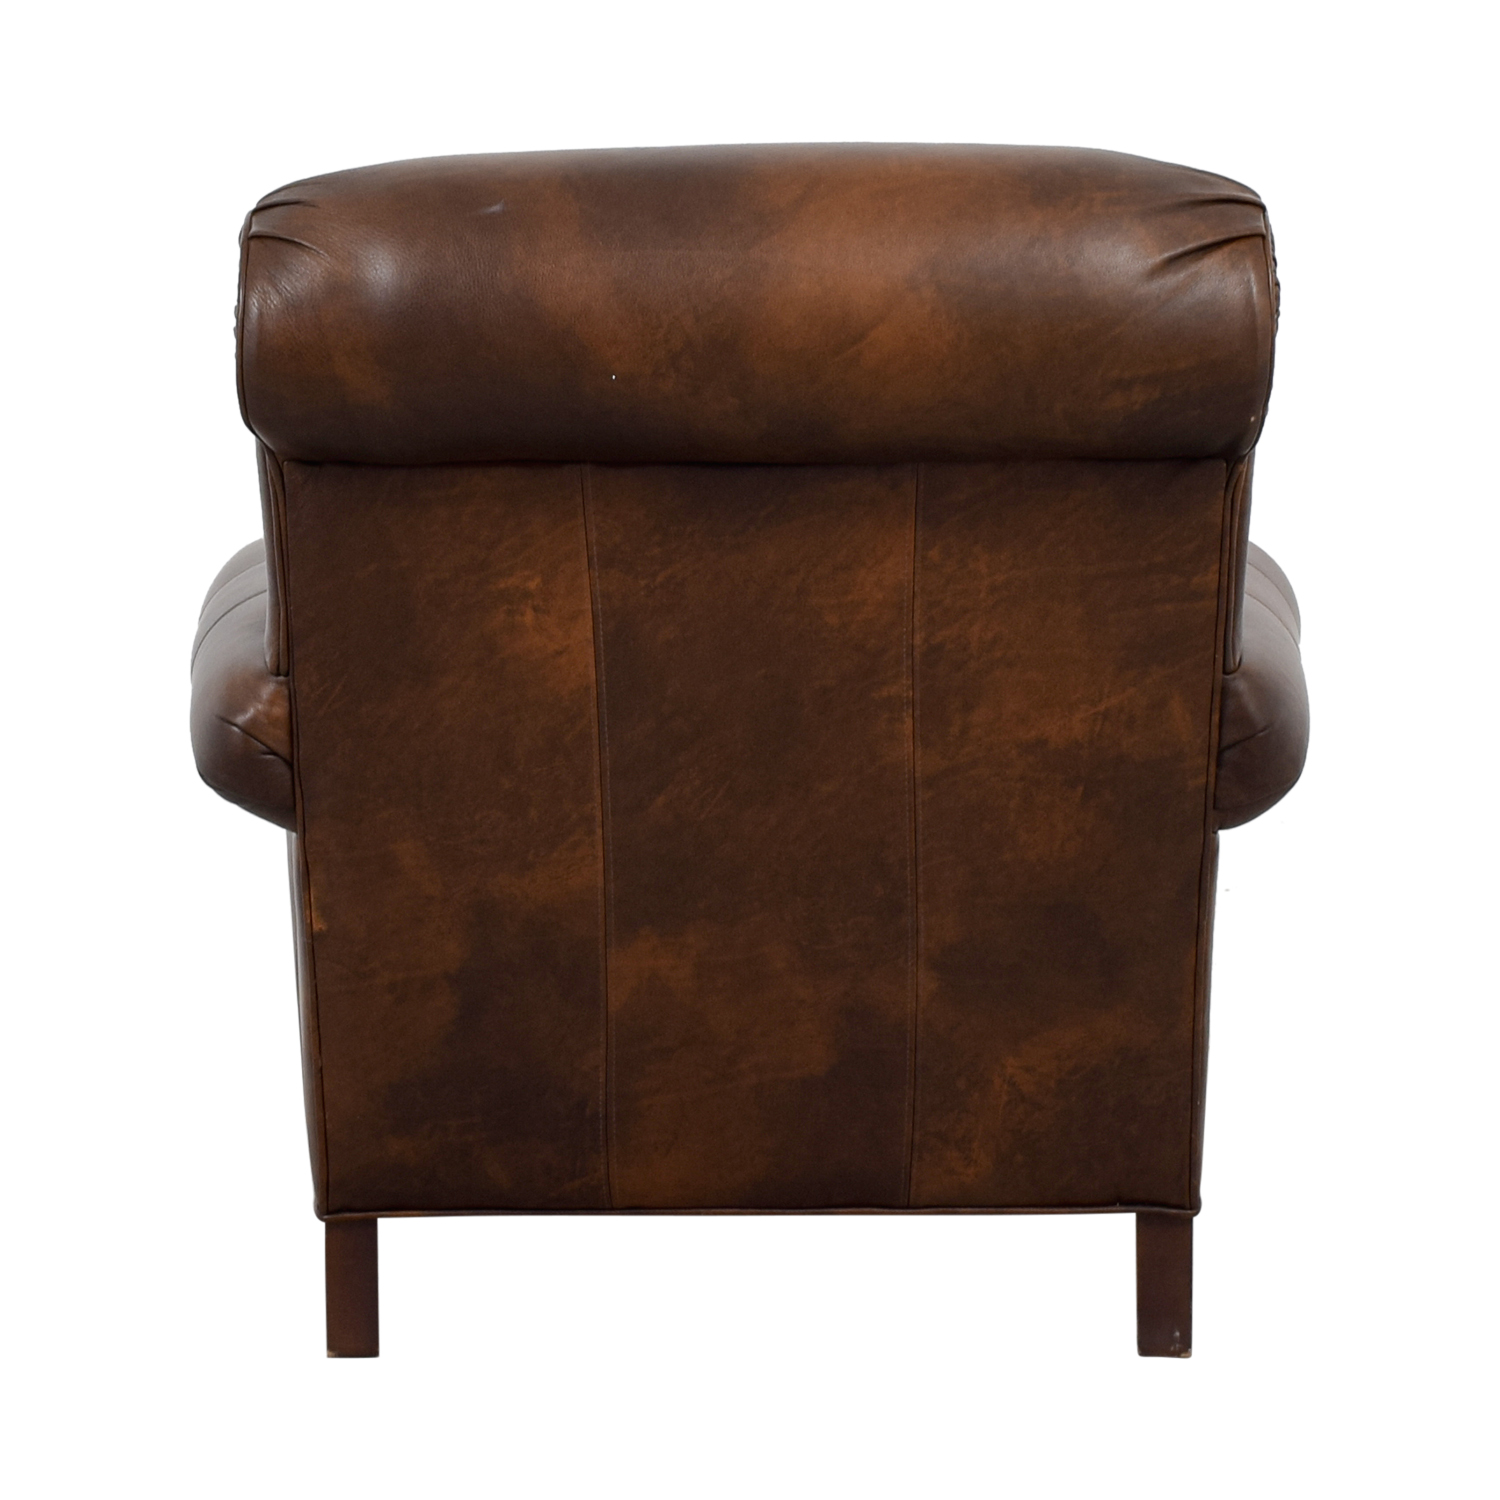 Ethan Allen Ethan Allen Brown Leather Chair & Ottoman nyc